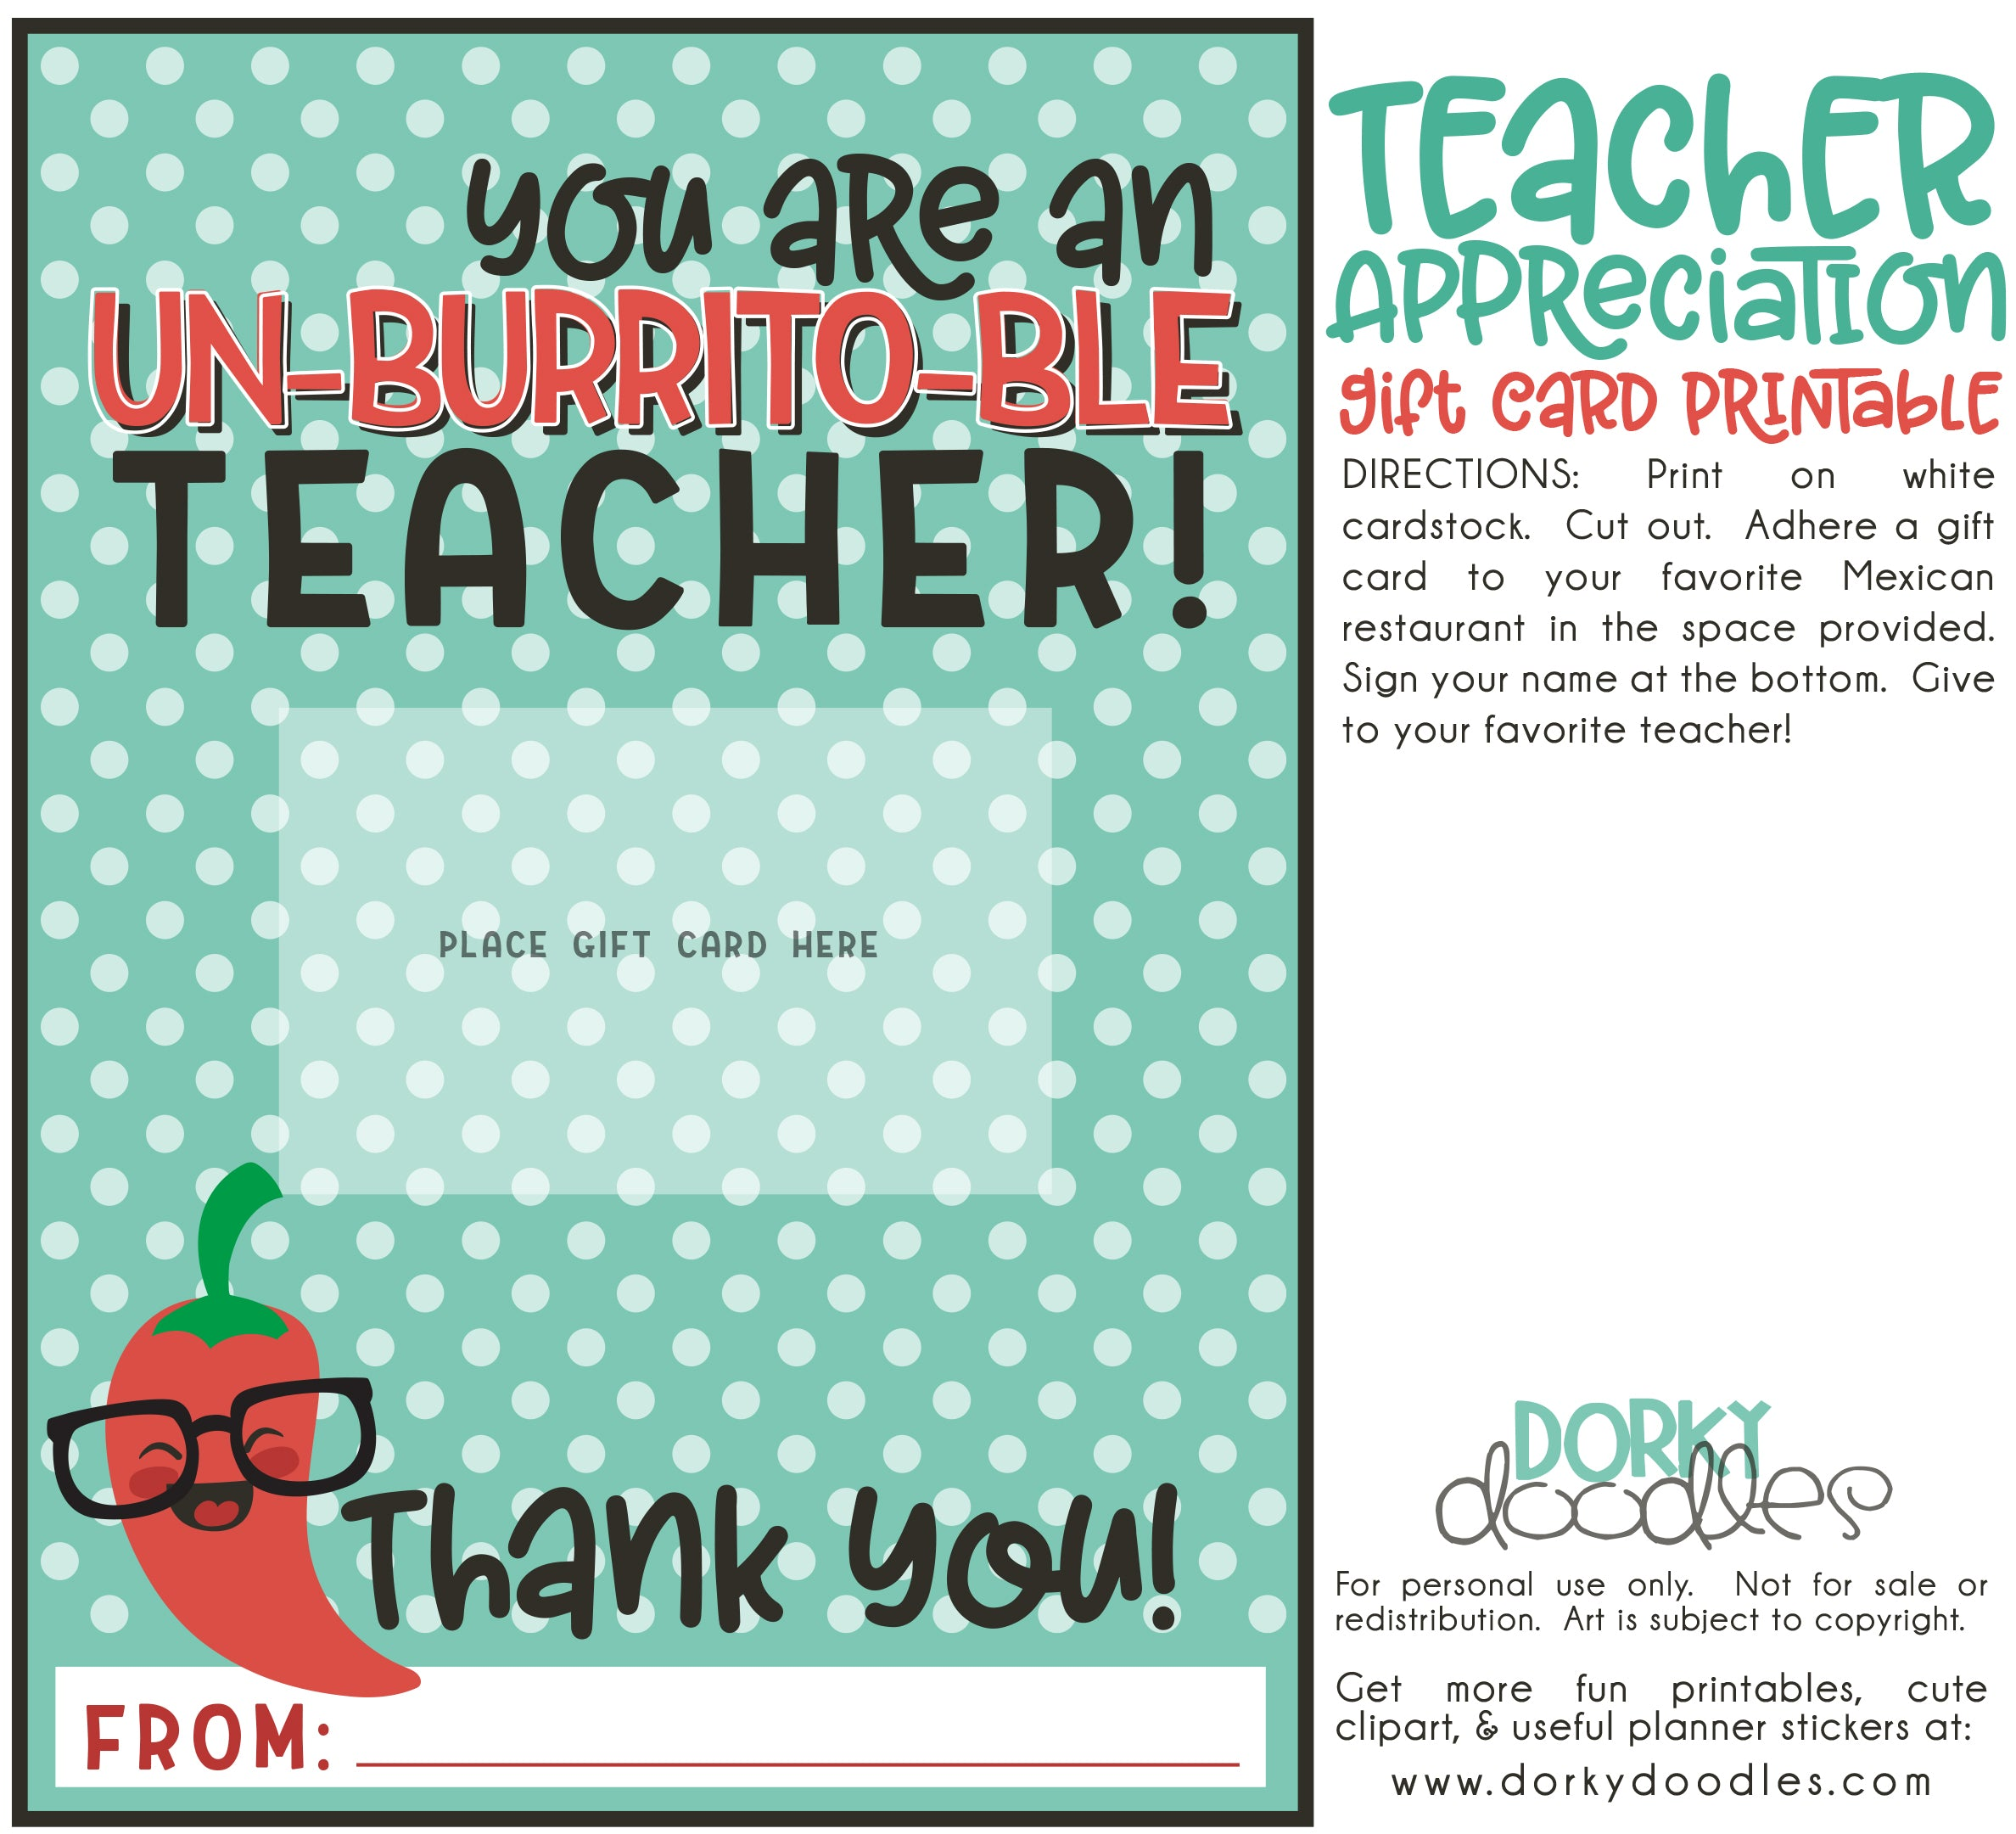 graphic about Teacher Appreciation Cards Printable named Instructor Appreciation Present Card Printable Dorky Doodles